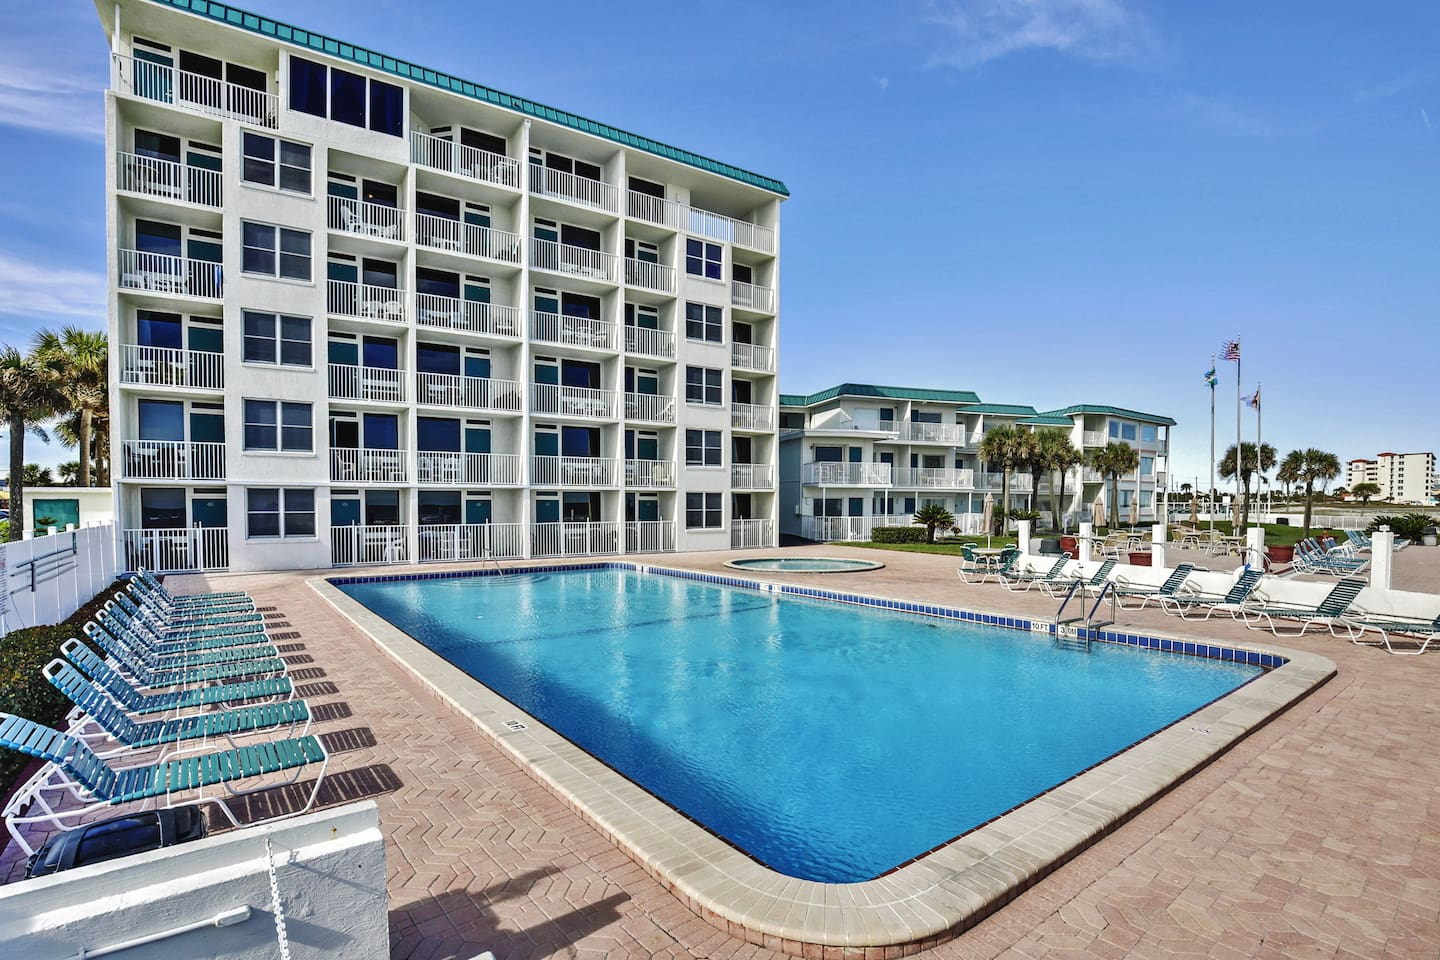 Let this sensational Daytona Beach vacation rental studio serve as your own personal oasis during your stay in sunny Florida!